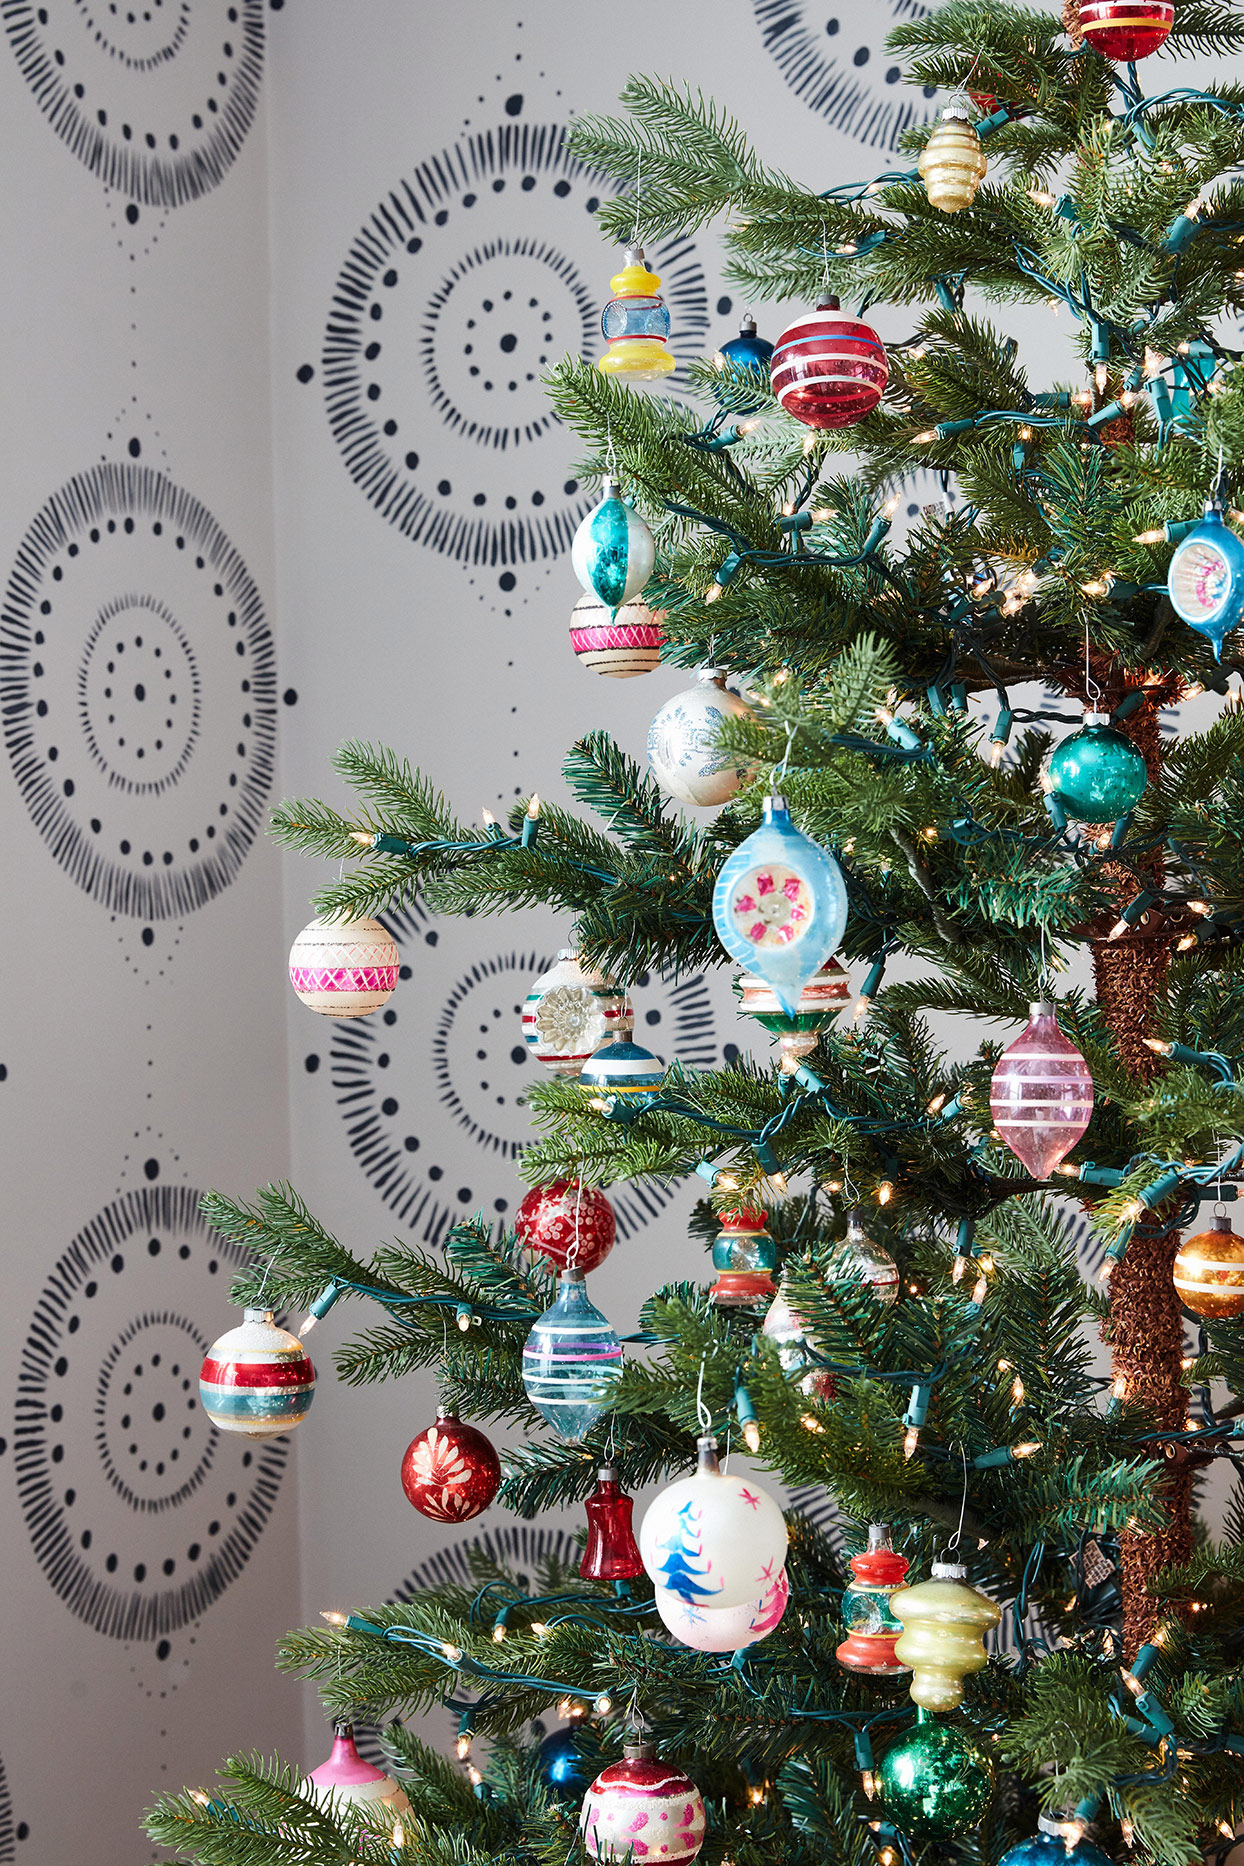 These Nostalgic Vintage Ceramic Christmas Trees Are Making a